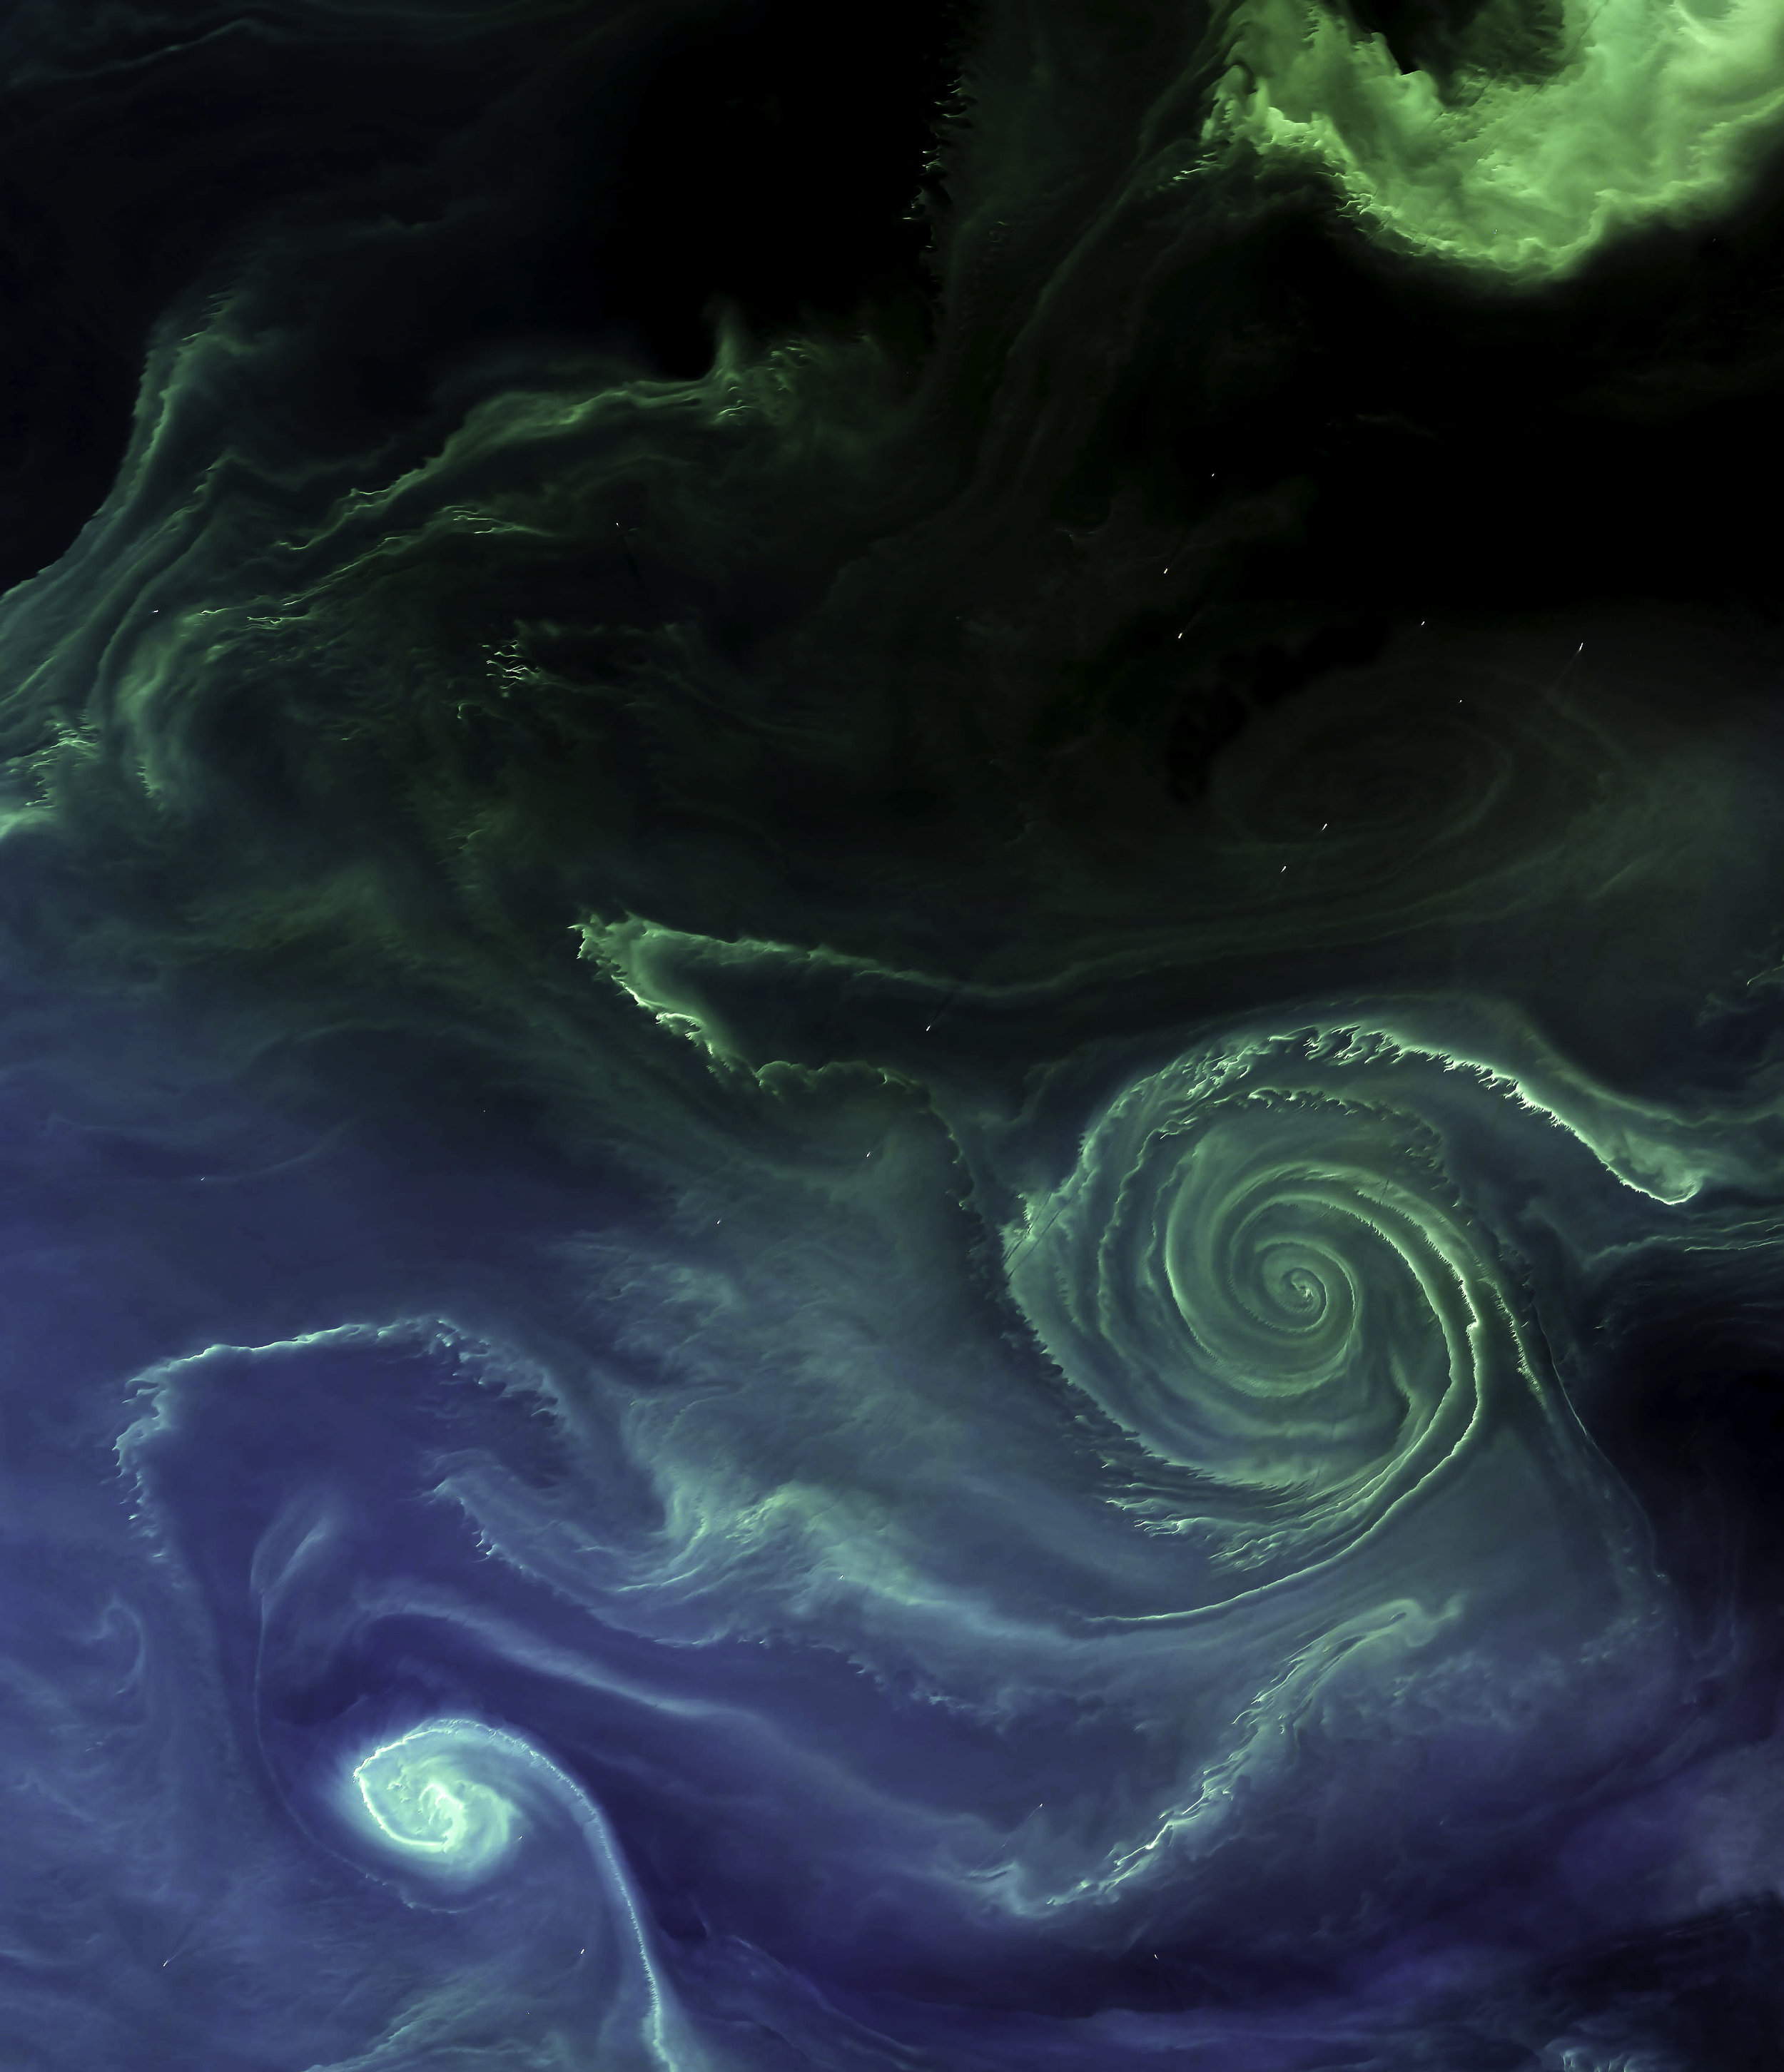 """Last month, the Operational Land Imager (OLI) on Landsat 8 captured this amazing Overview of a swirling green phytoplankton bloom in the Baltic Sea. Blooms like this spread across the northern basins of the North Atlantic and Arctic Oceans every summer, often spanning hundreds and sometimes thousands of miles. Scientists believe these blooms to be cyanobacteria, or blue-green algae — an ancient marine bacteria that captures and stores solar energy through photosynthesis.  59°31'40.0""""N, 23°21'23.0""""E  Source imagery: NASA - National Aeronautics and Space Administration"""